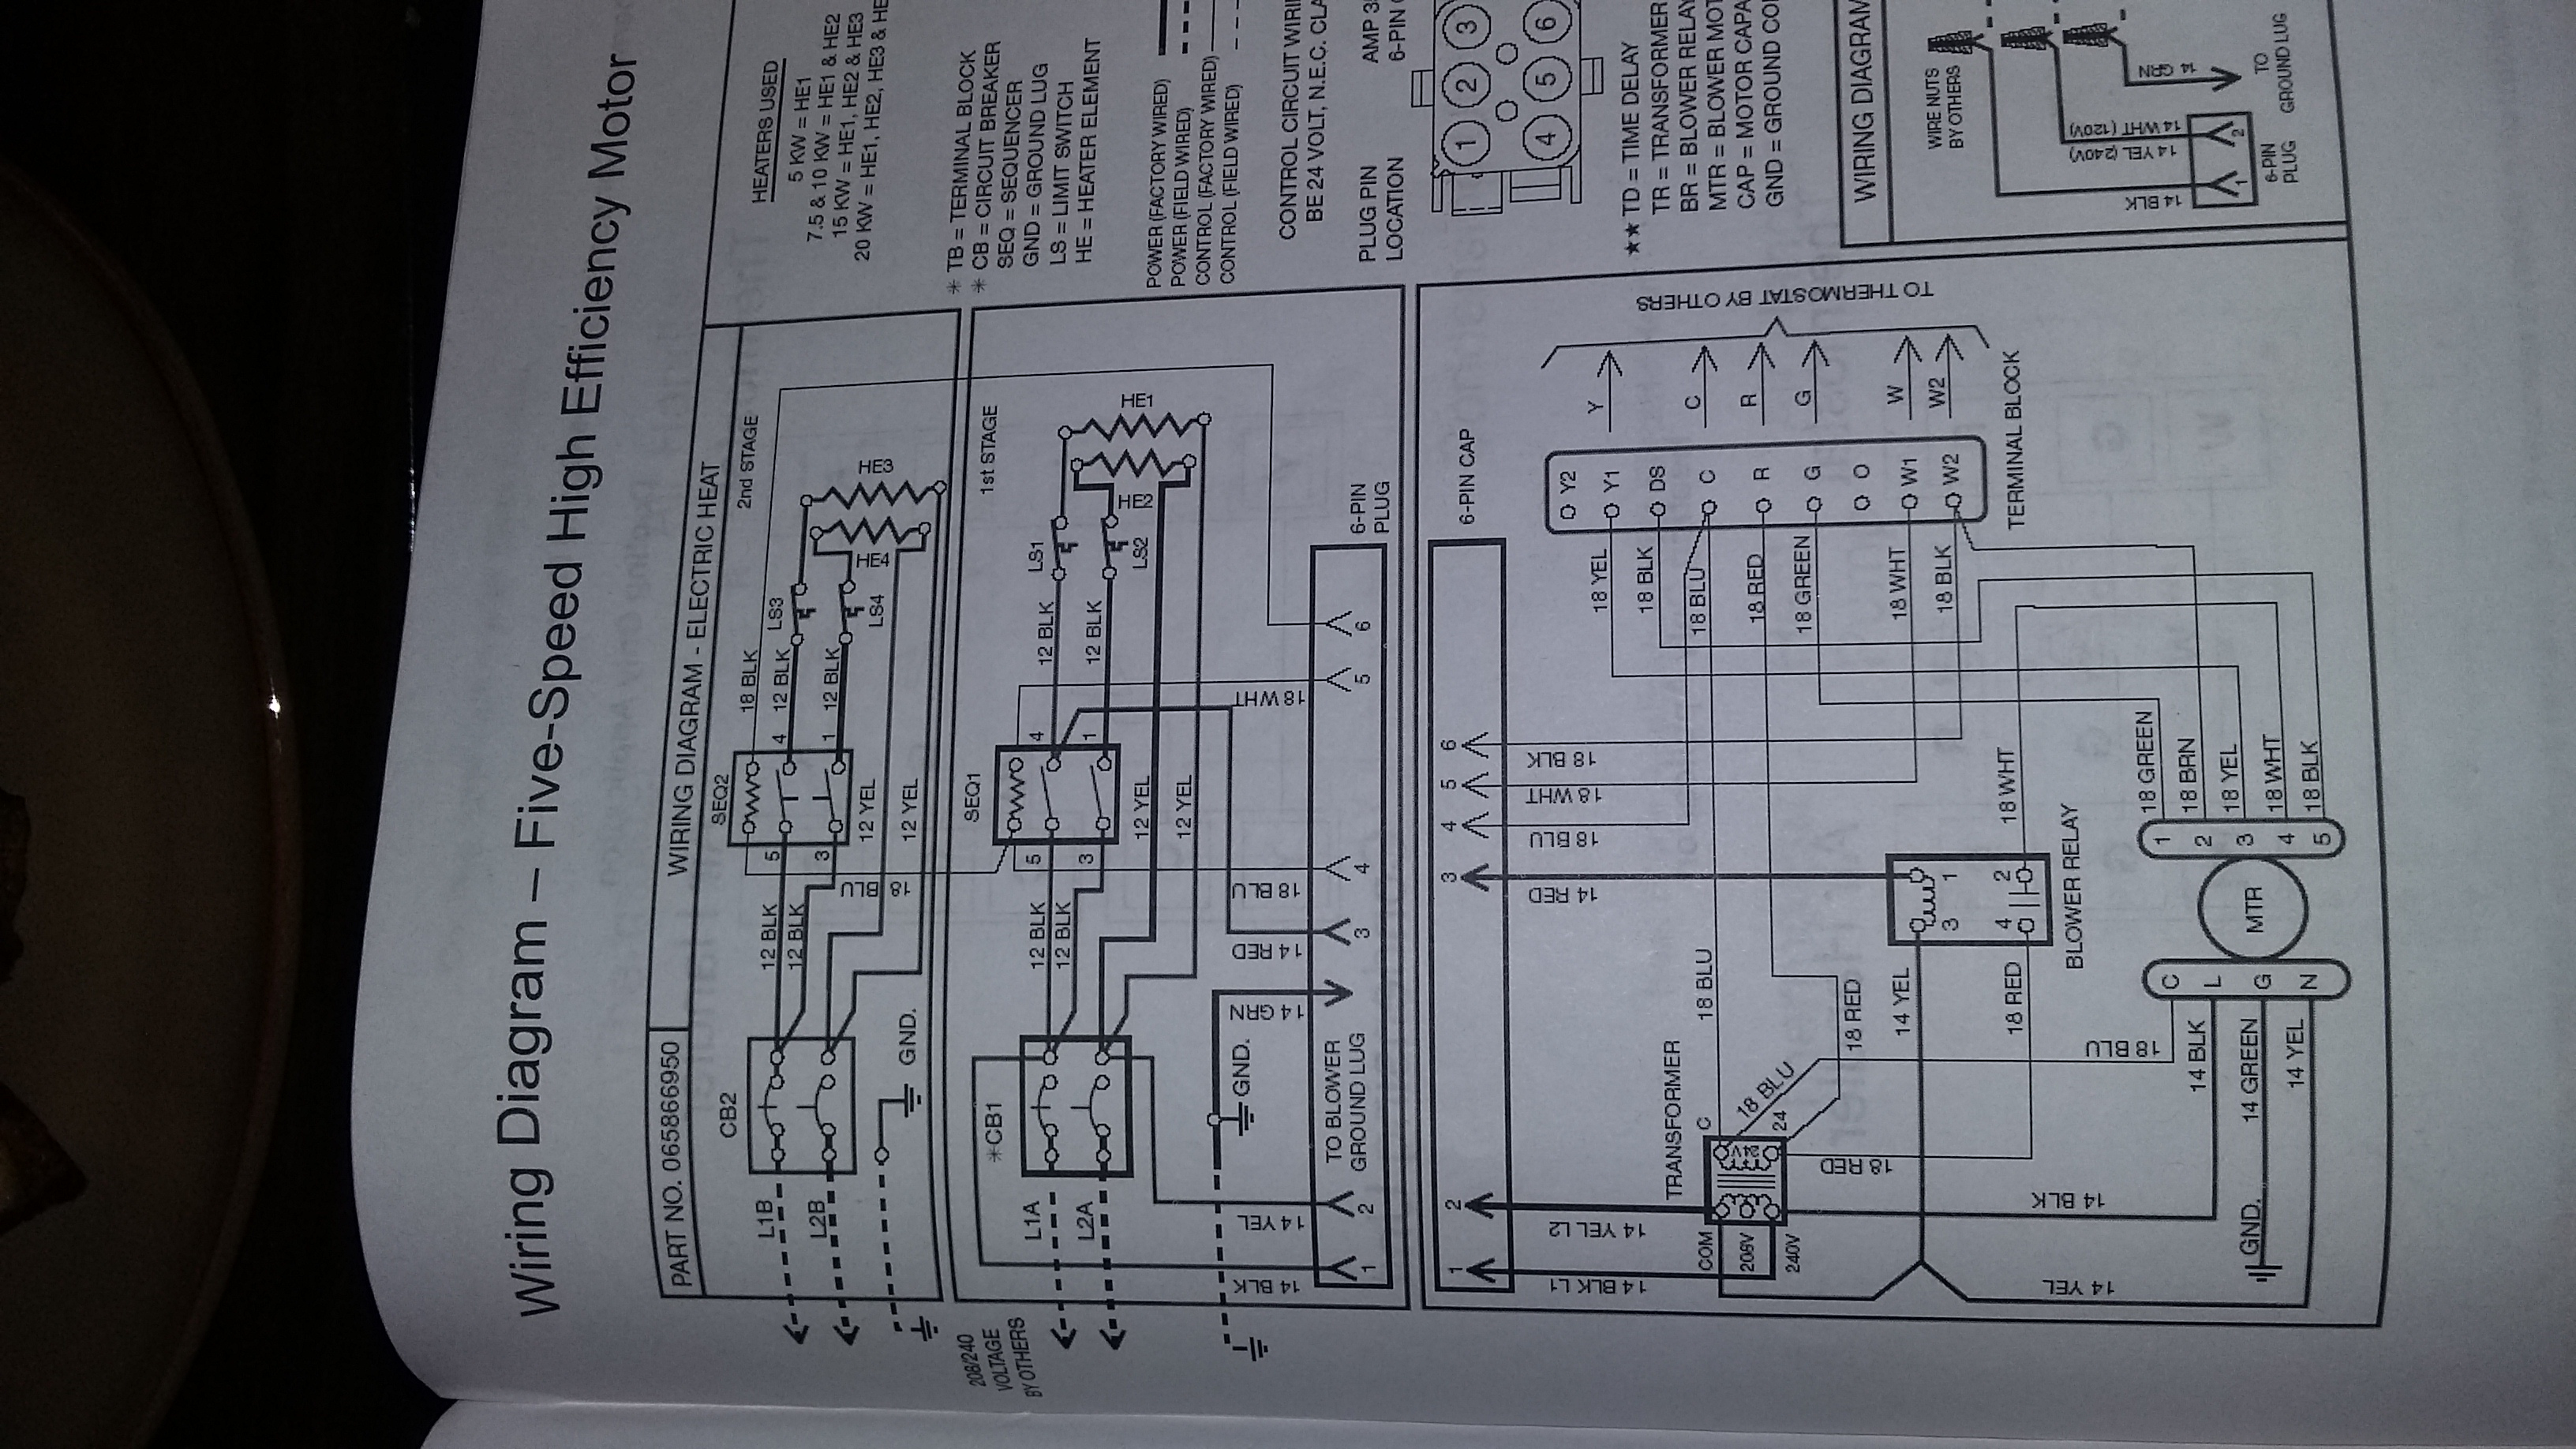 I Have A York Heat Pump And My Defrost Board Was Bad Installed Trane Wiring Diagrams Model Echalon 20161218 194439